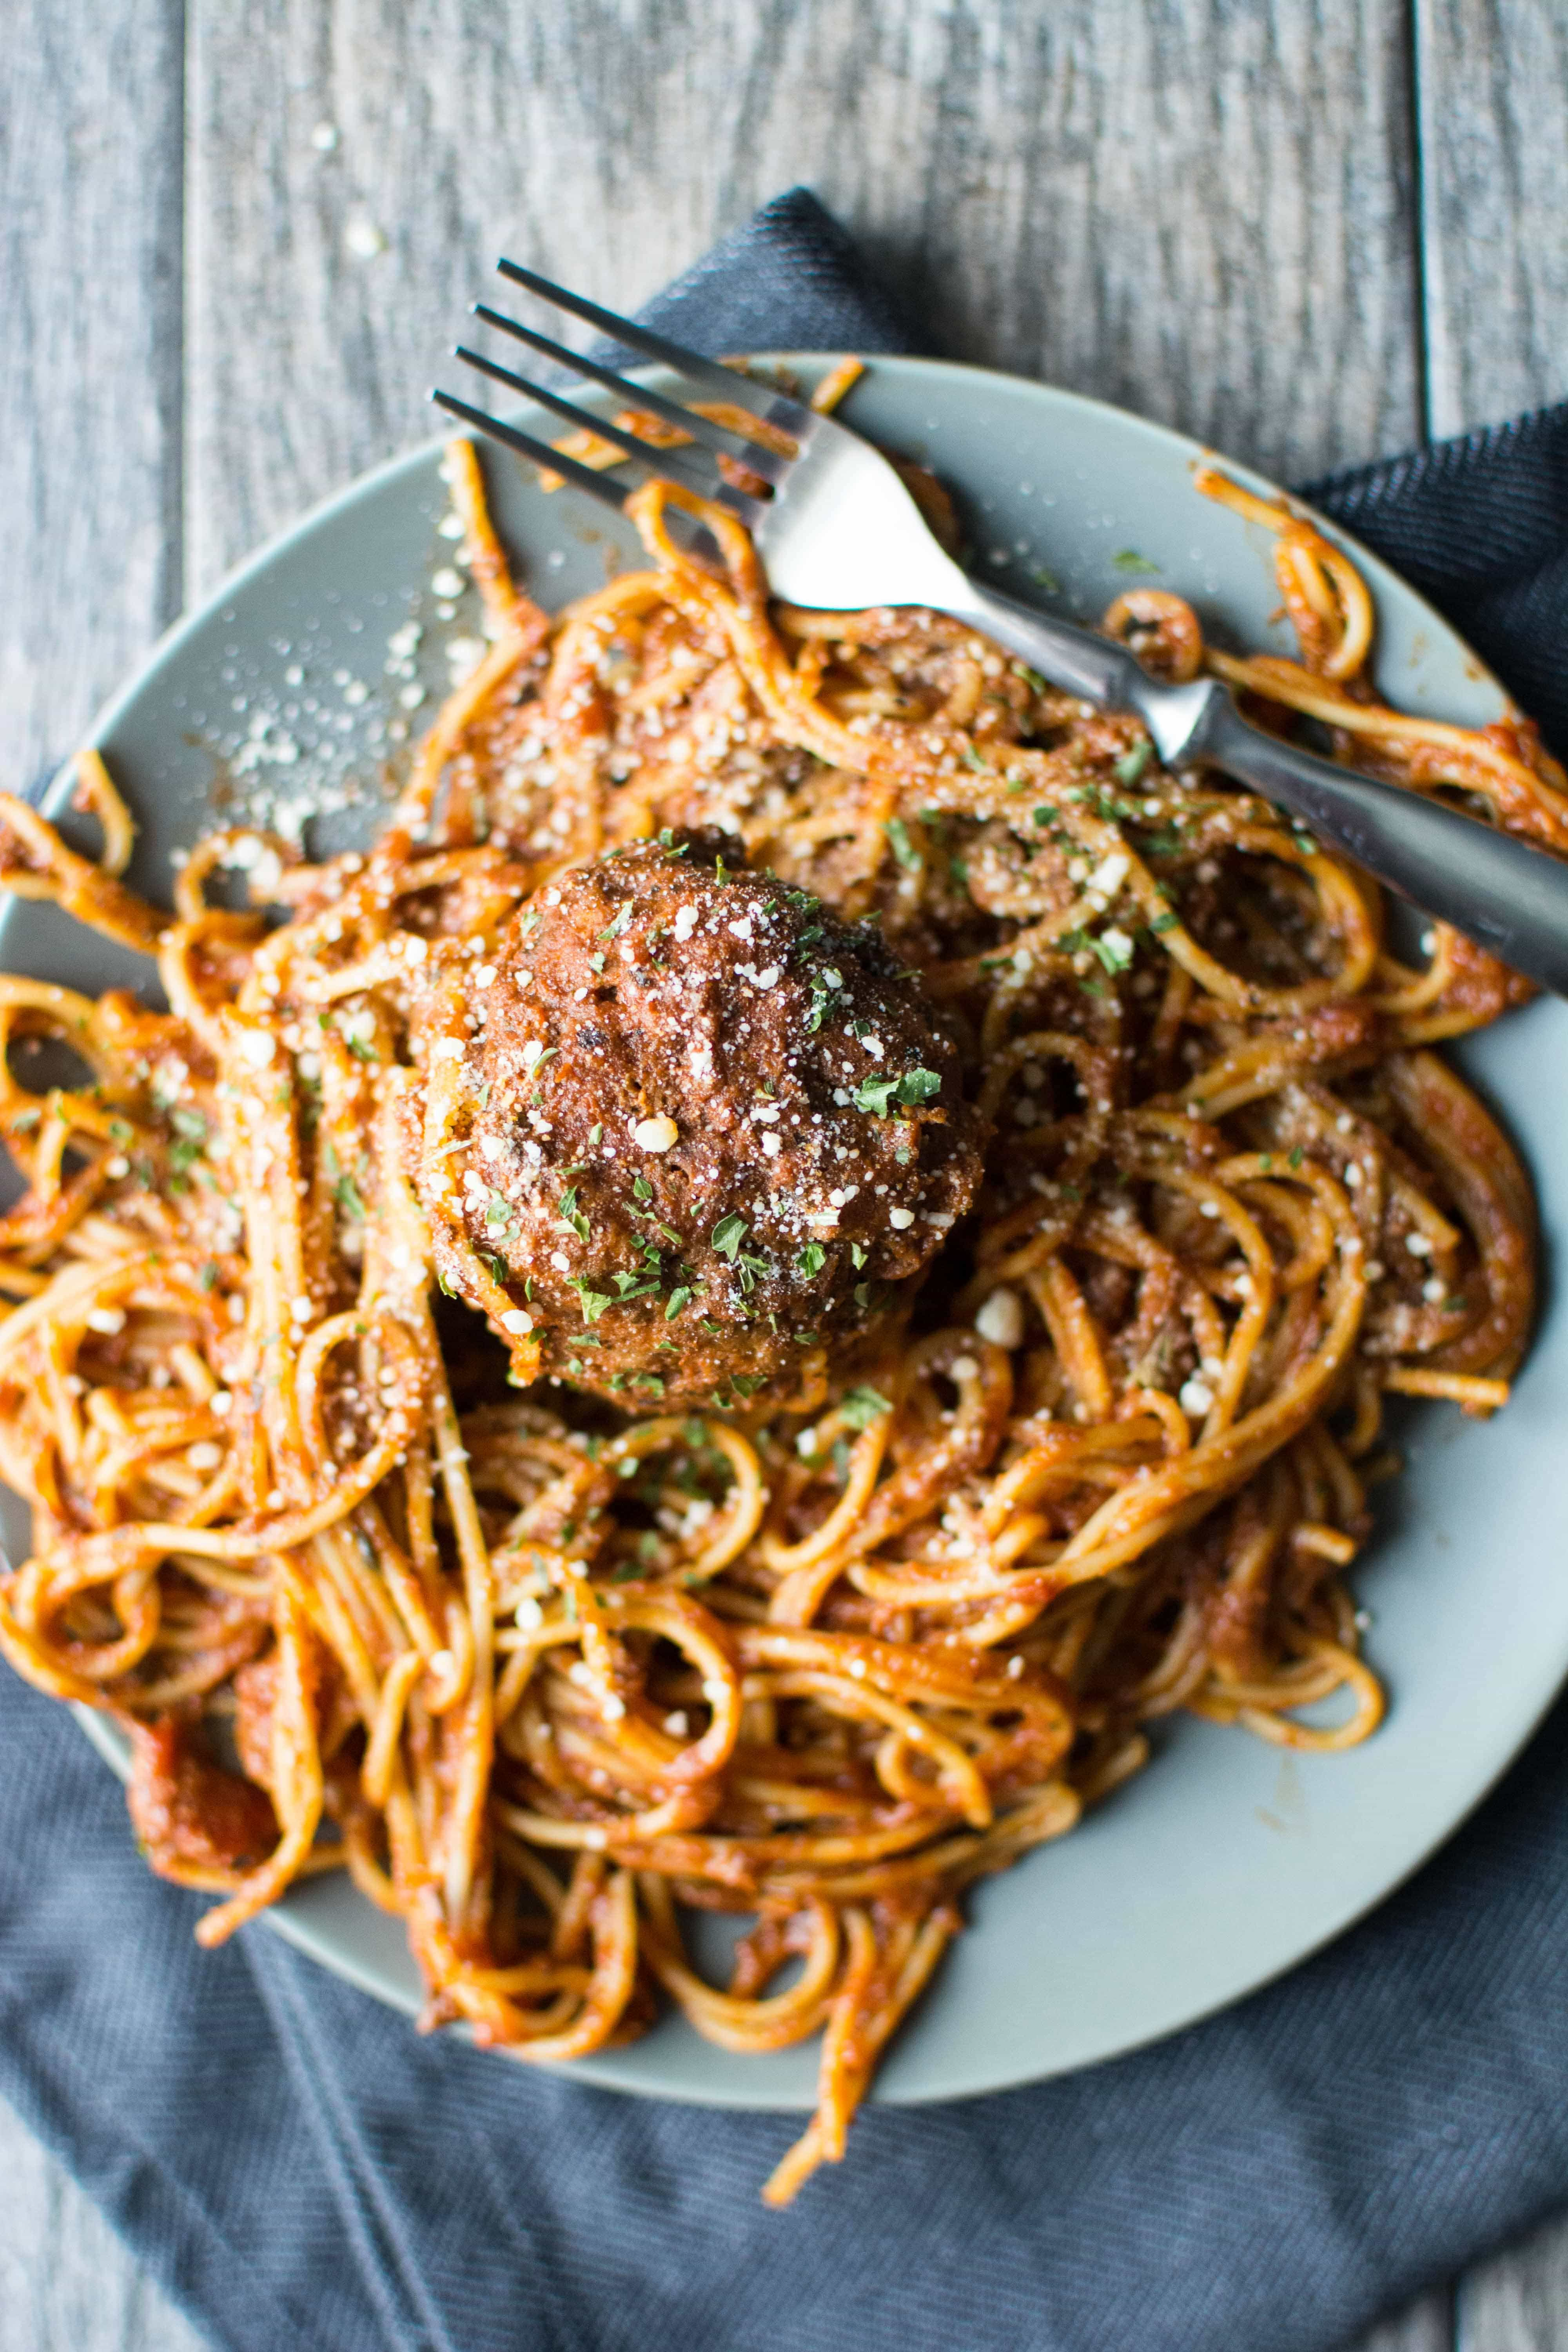 Slow Cooker One Pot Spaghetti Amp Meatballs Slow Cooker Gourmet